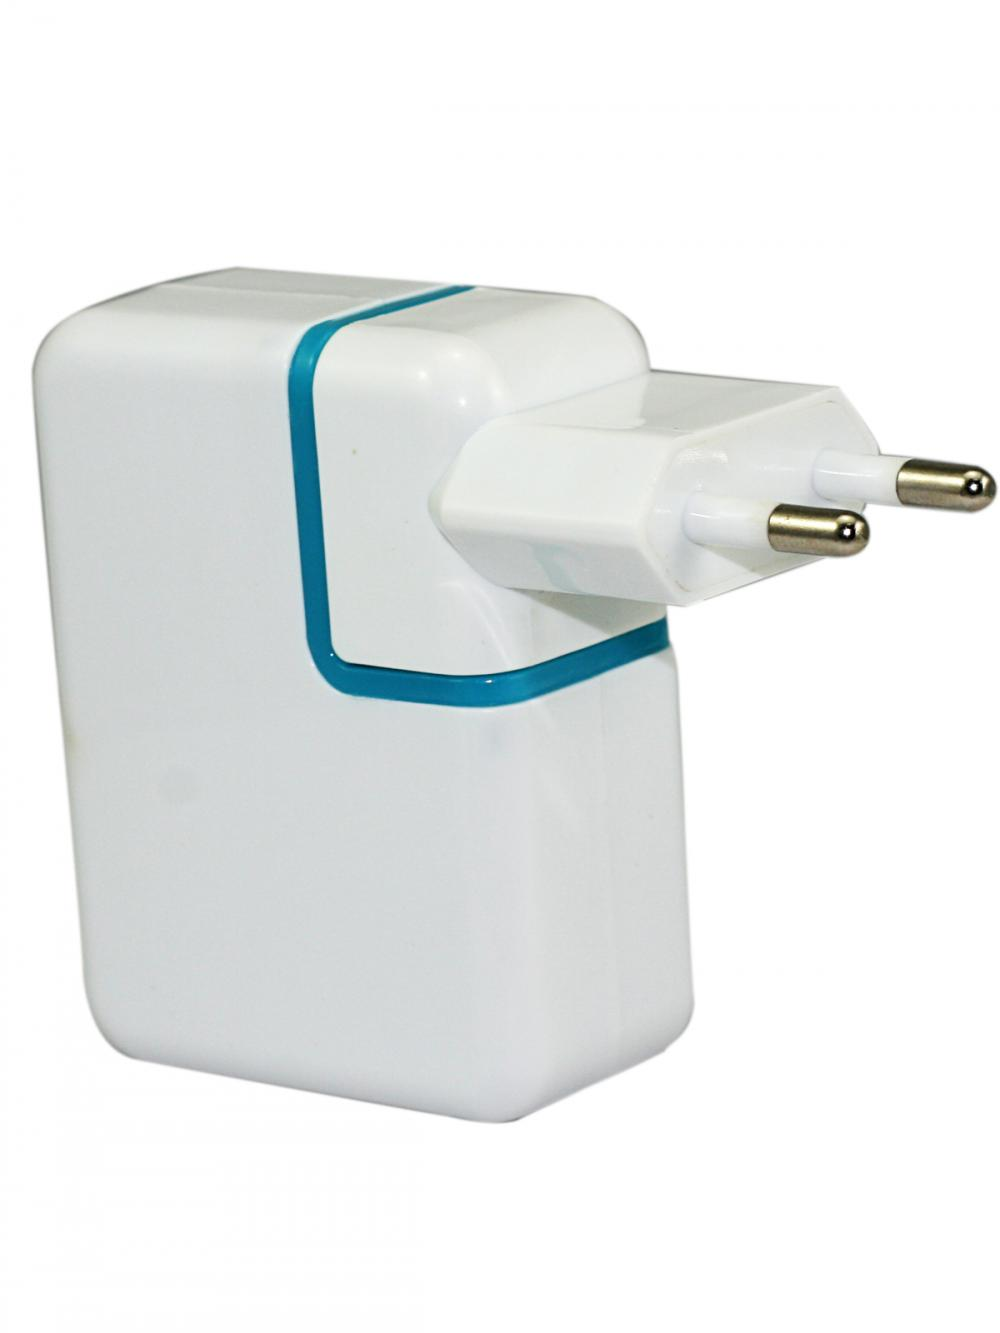 USB Wall charger with car plug